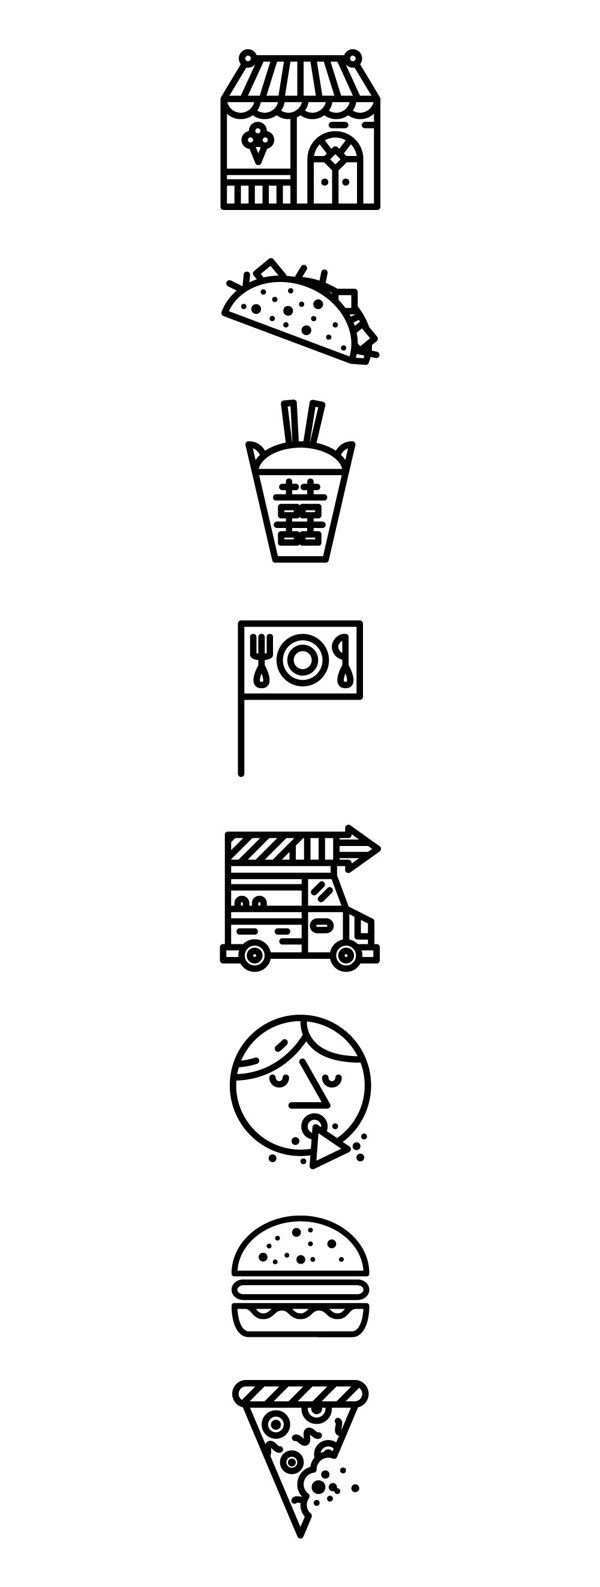 Pin By Phoebe Chao On Icongraphy Logo Design Pictogram Icon Design